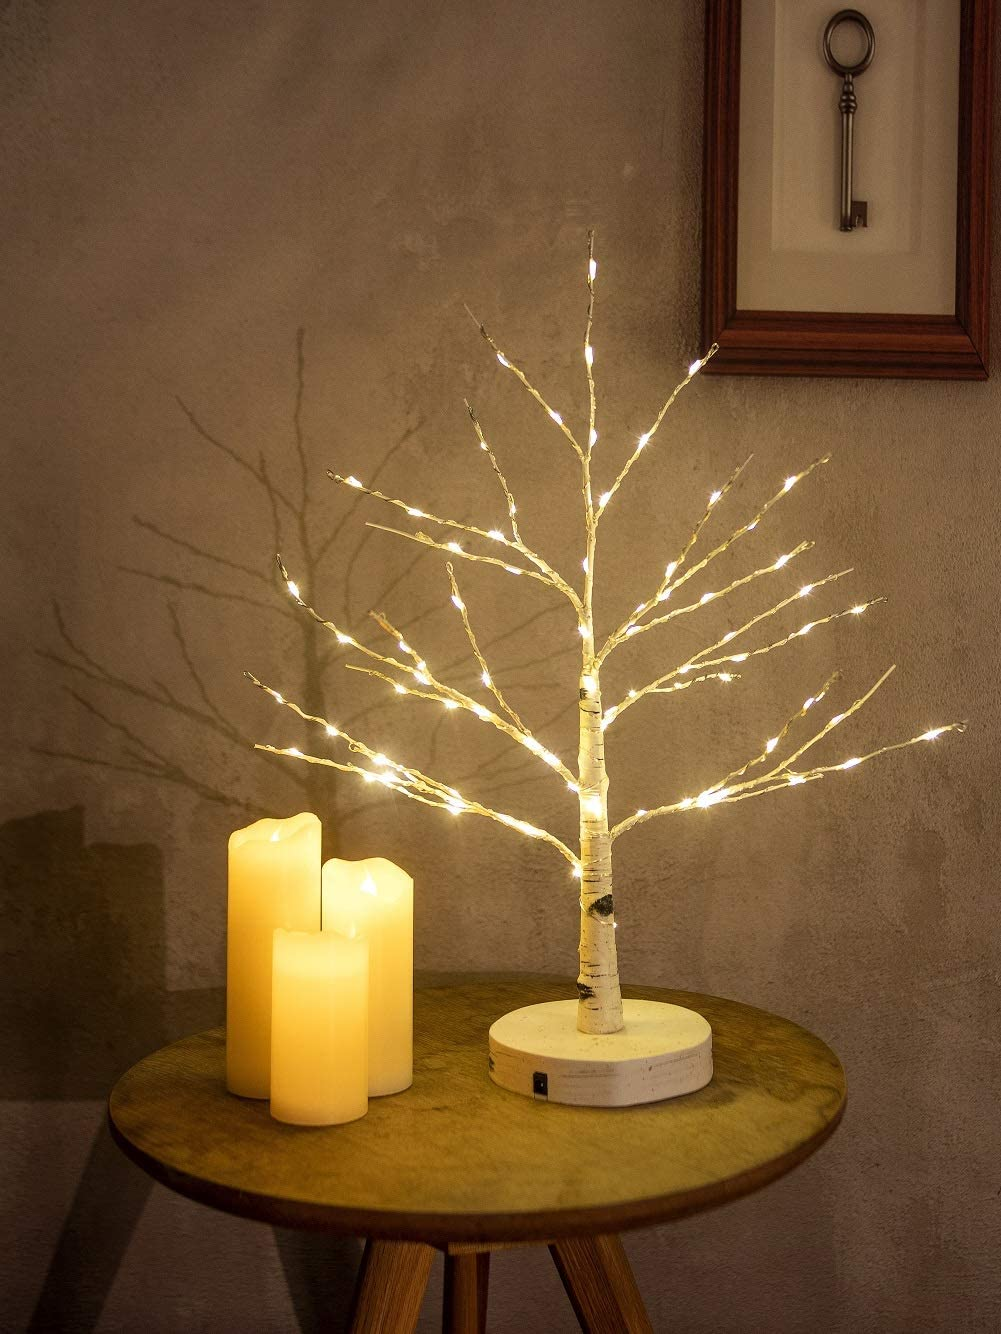 Artificial Decorative Light Tree | 24 Warm White LED Star Batteries USB Operated | Tabletop Decoration Centerpiece | Christmas Easter Holiday Party Indoor Decor 18 Inches (80 LEDs Grain Base)